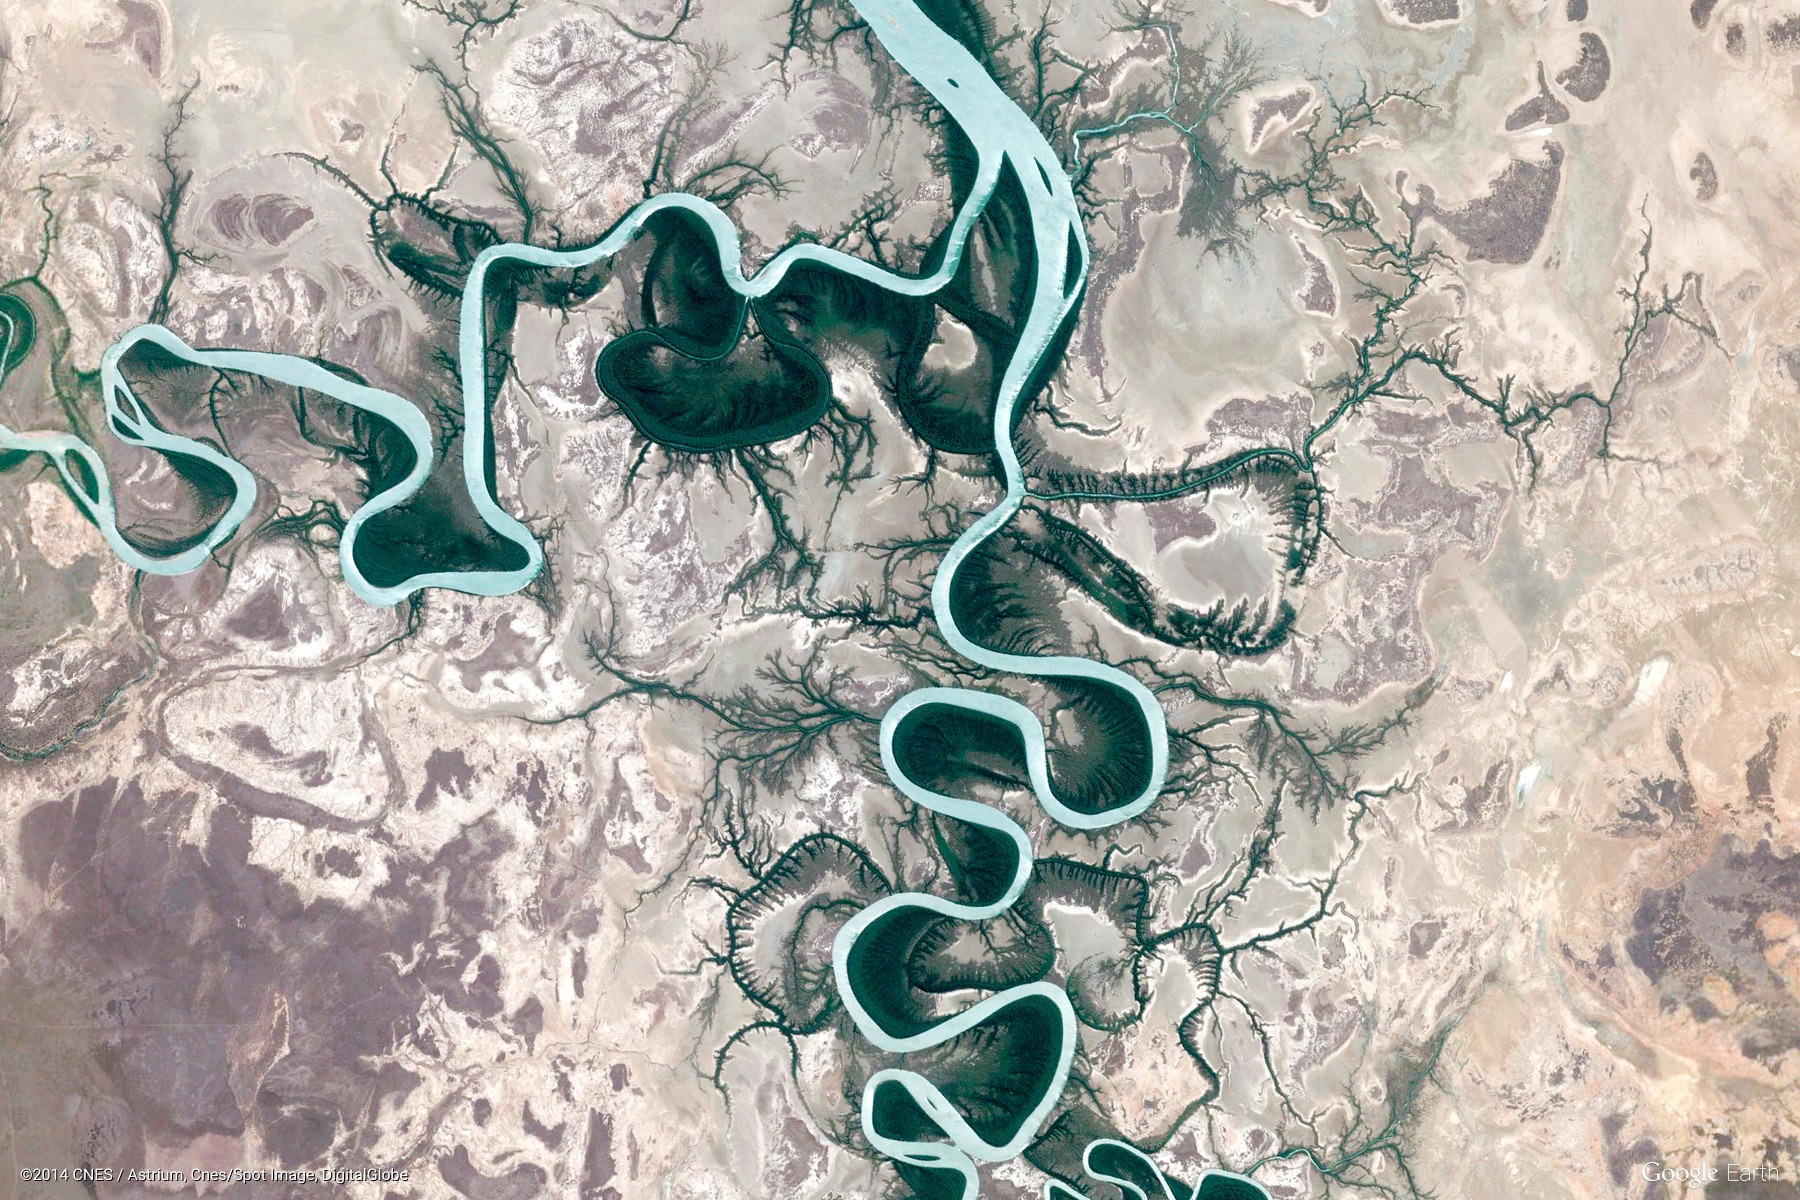 hight resolution of album 200 of my favorite google earth view wallpapers tags r wallpapers art modern art doodle drawing animal atlas diagram map reptile snake